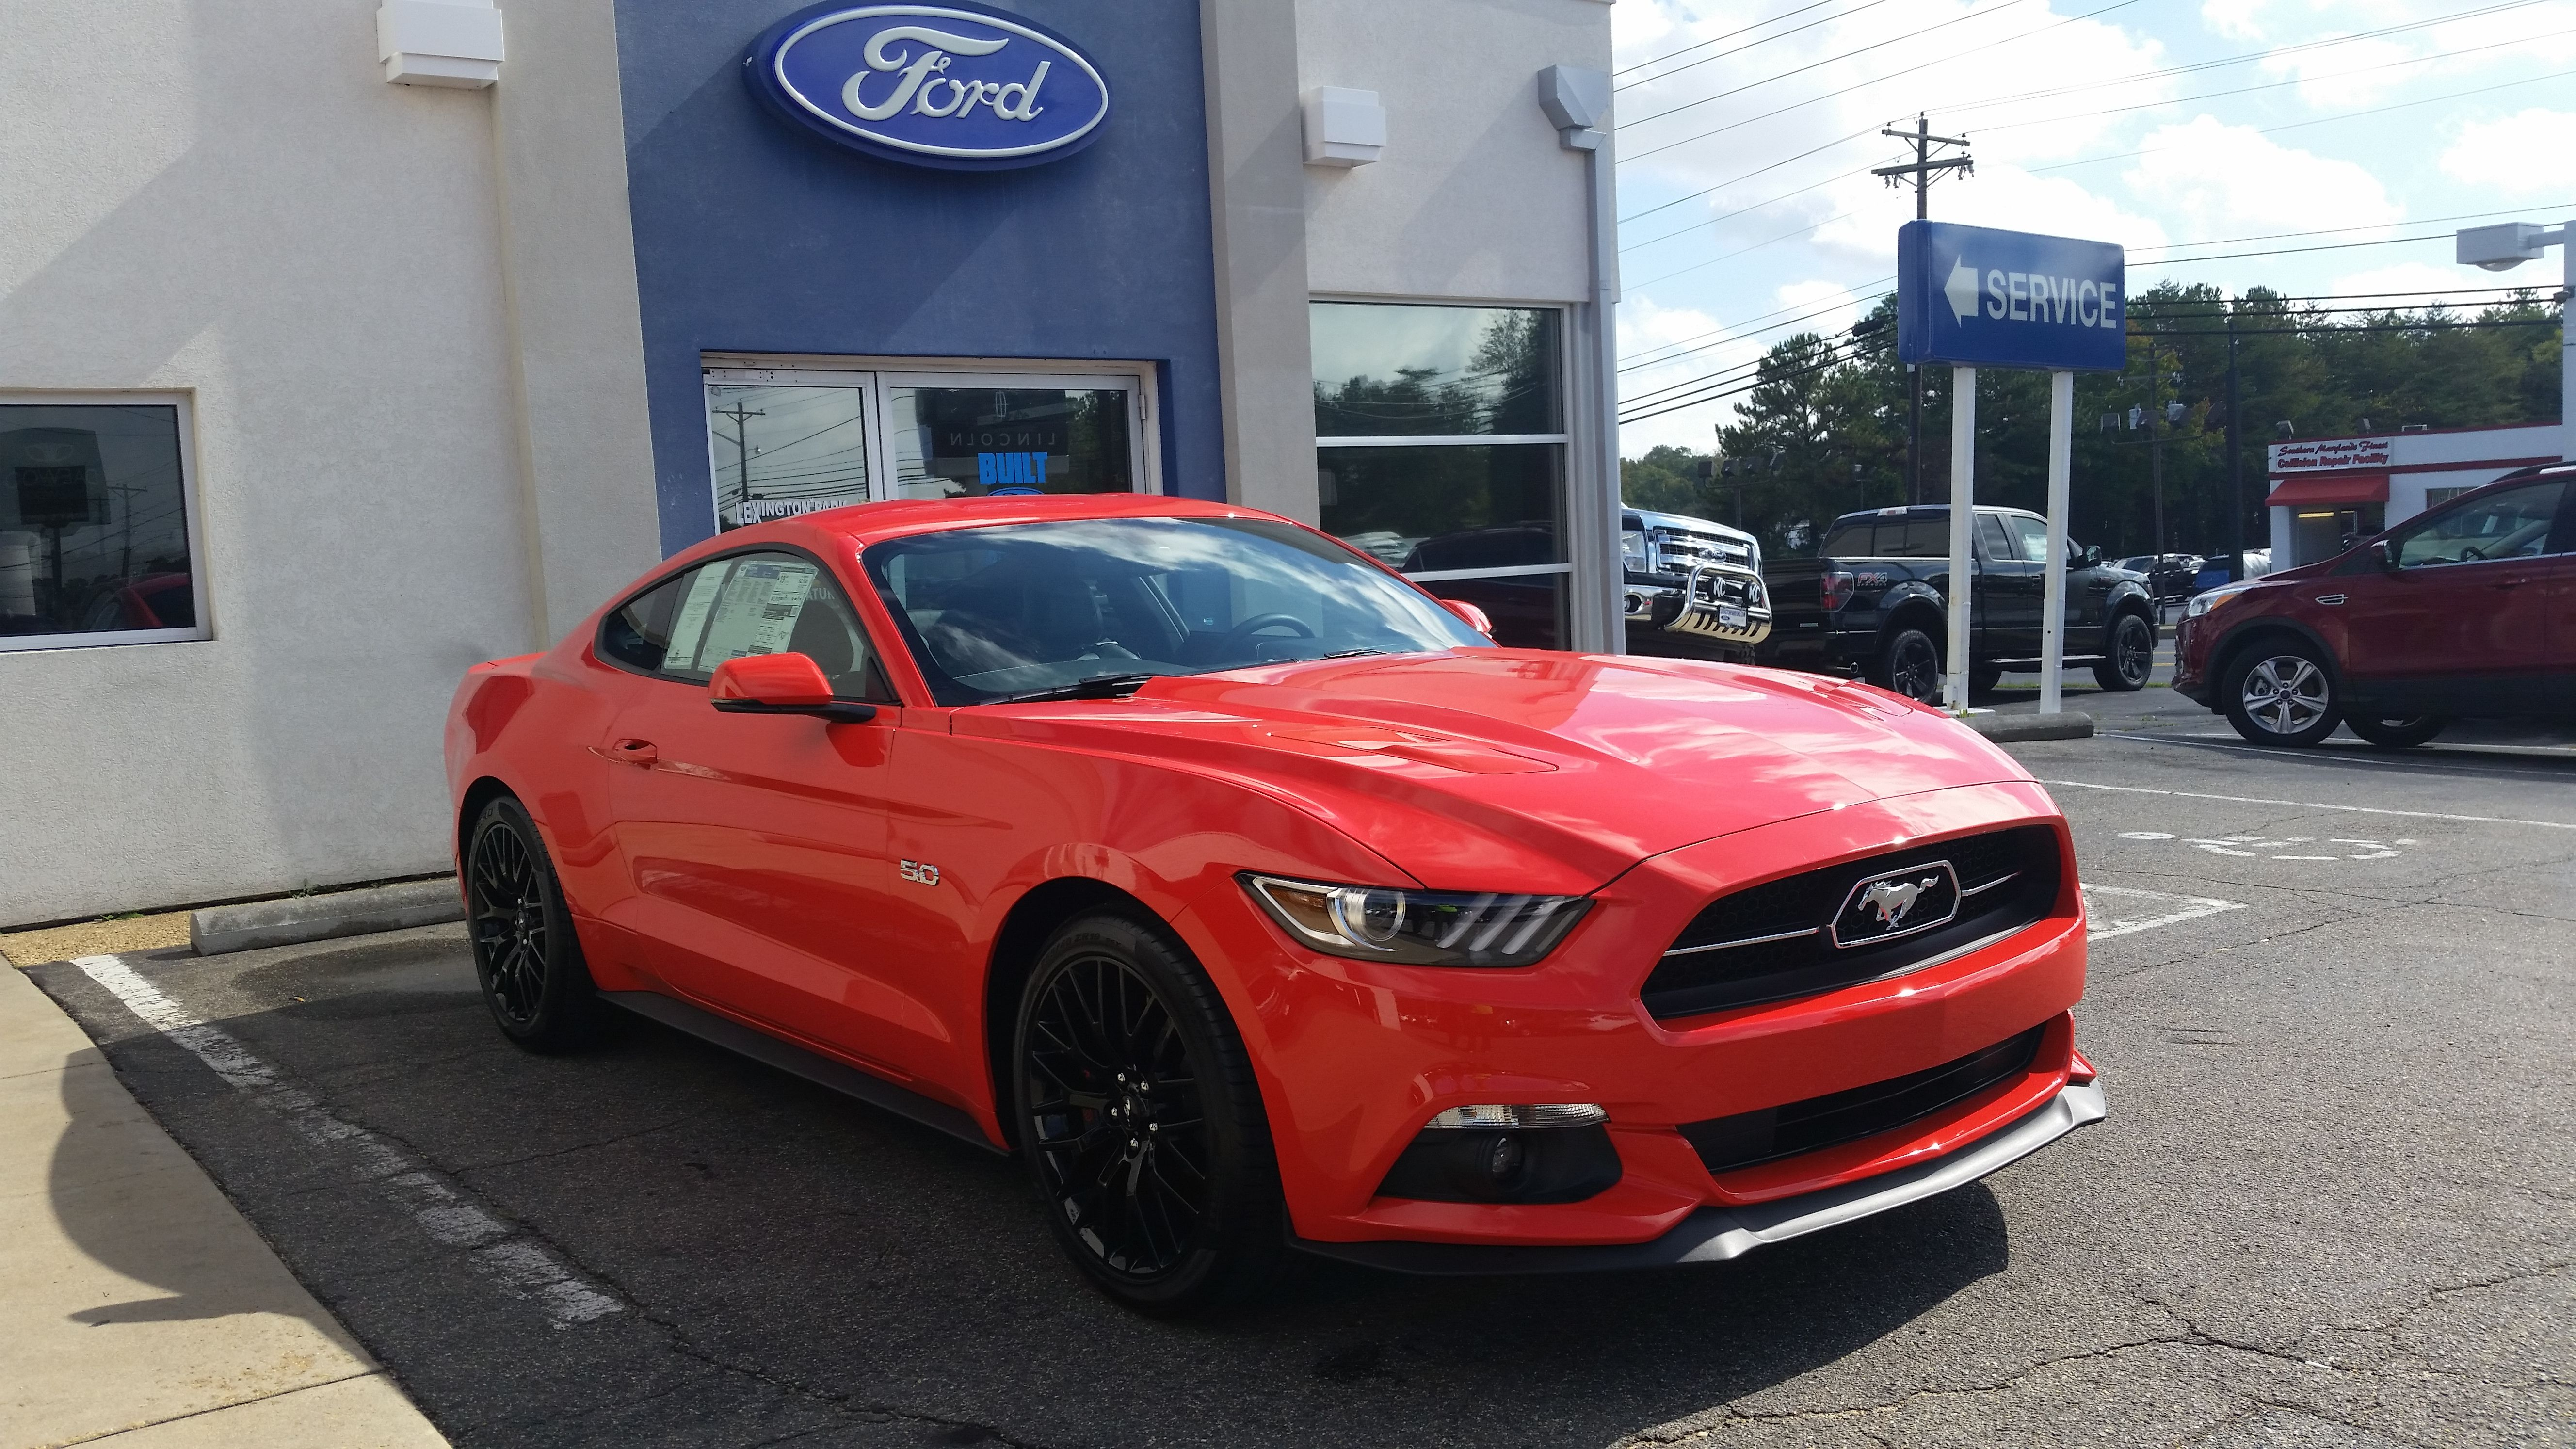 2015 Ford Mustang GT premium petition Orange 50th Anniversary